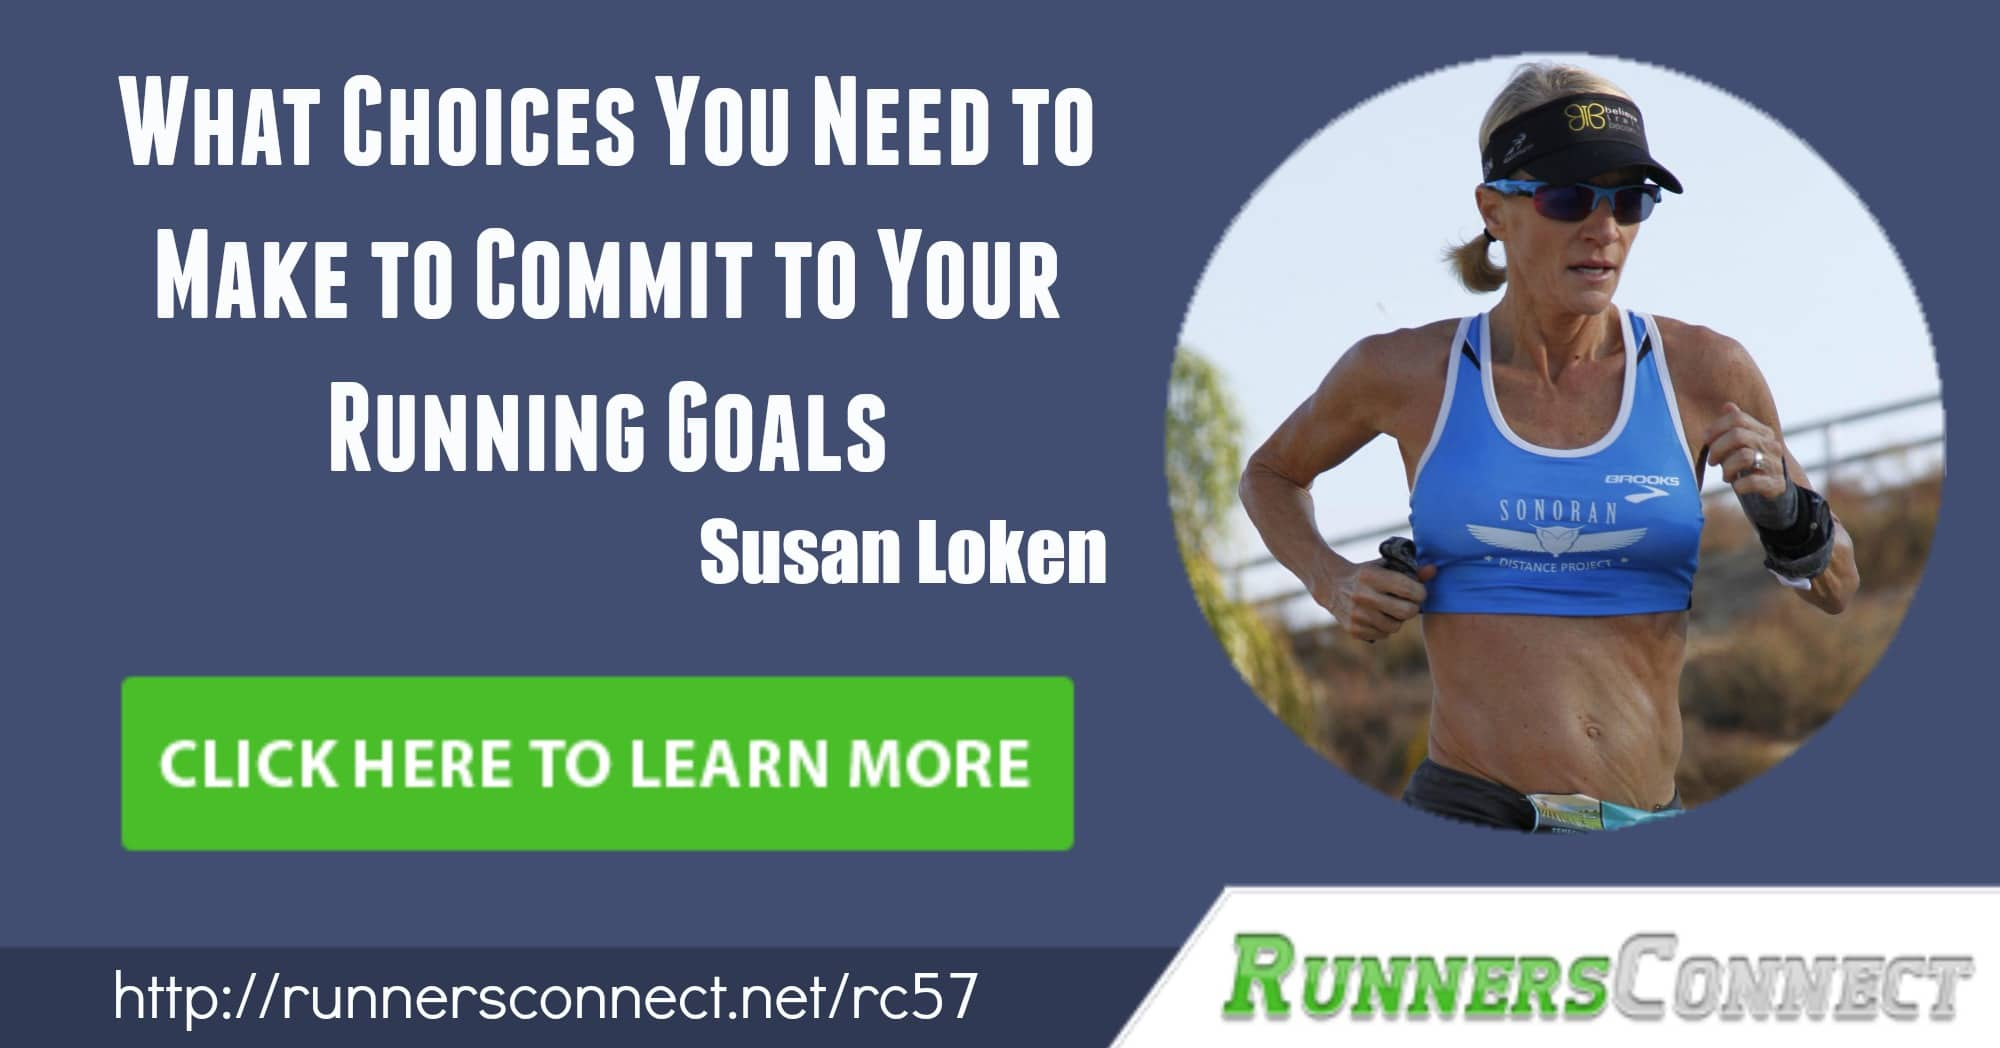 Susan Loken is one inspirational masters runner! From a run-walk mother of 3 to a 4 time marathon masters champion, learn her tips & tricks to running fast!